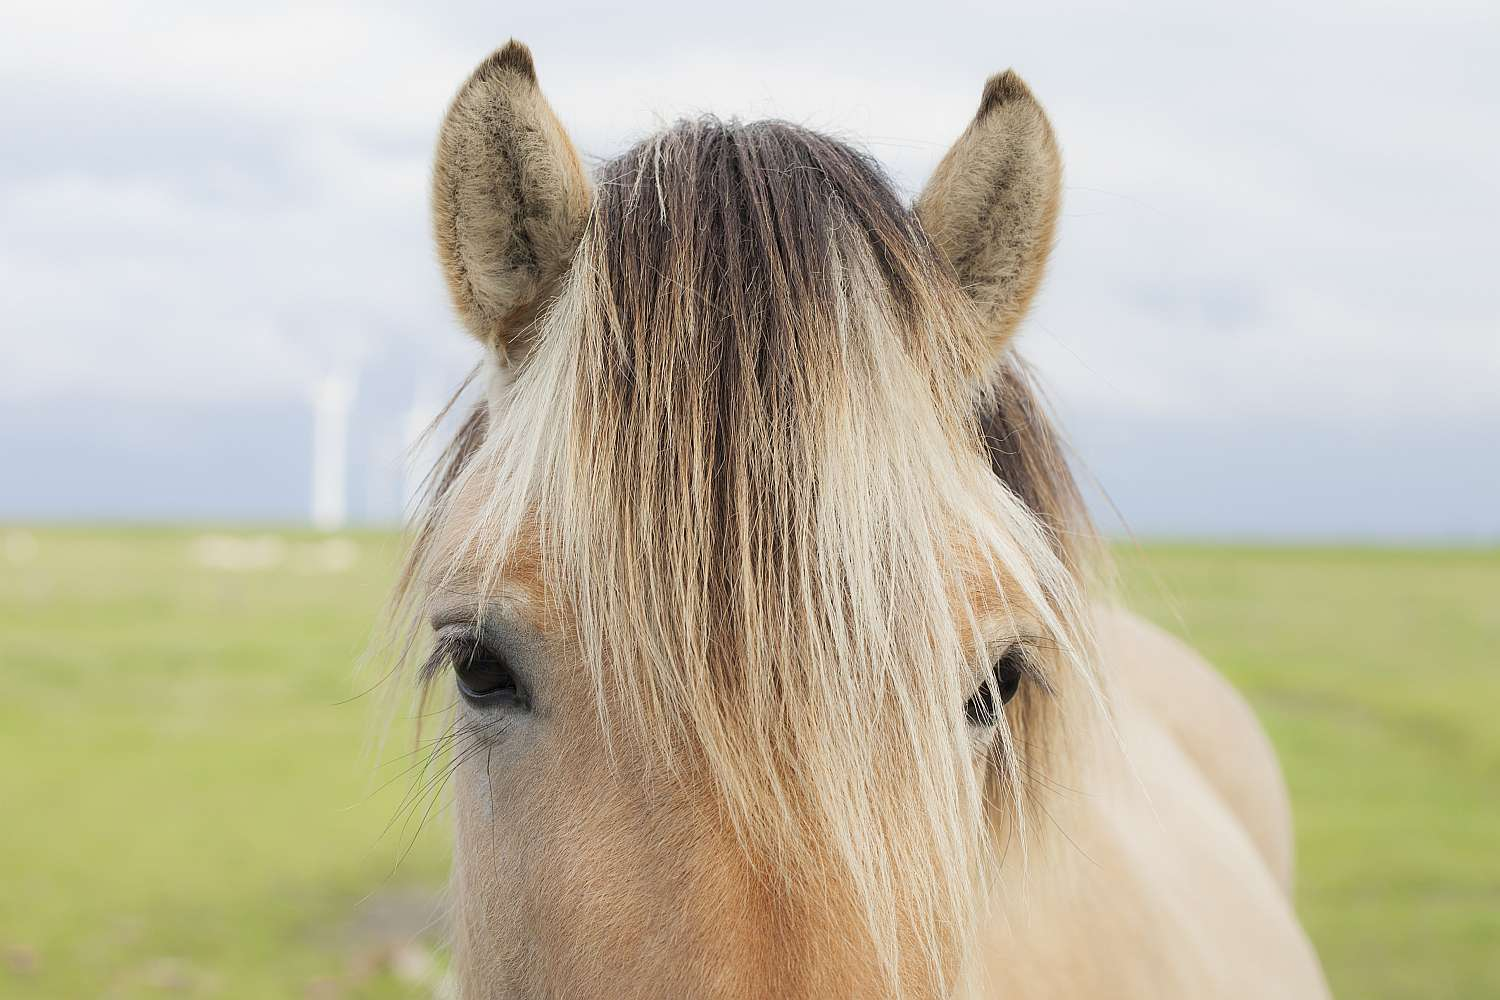 A close up of a horse's forelock.